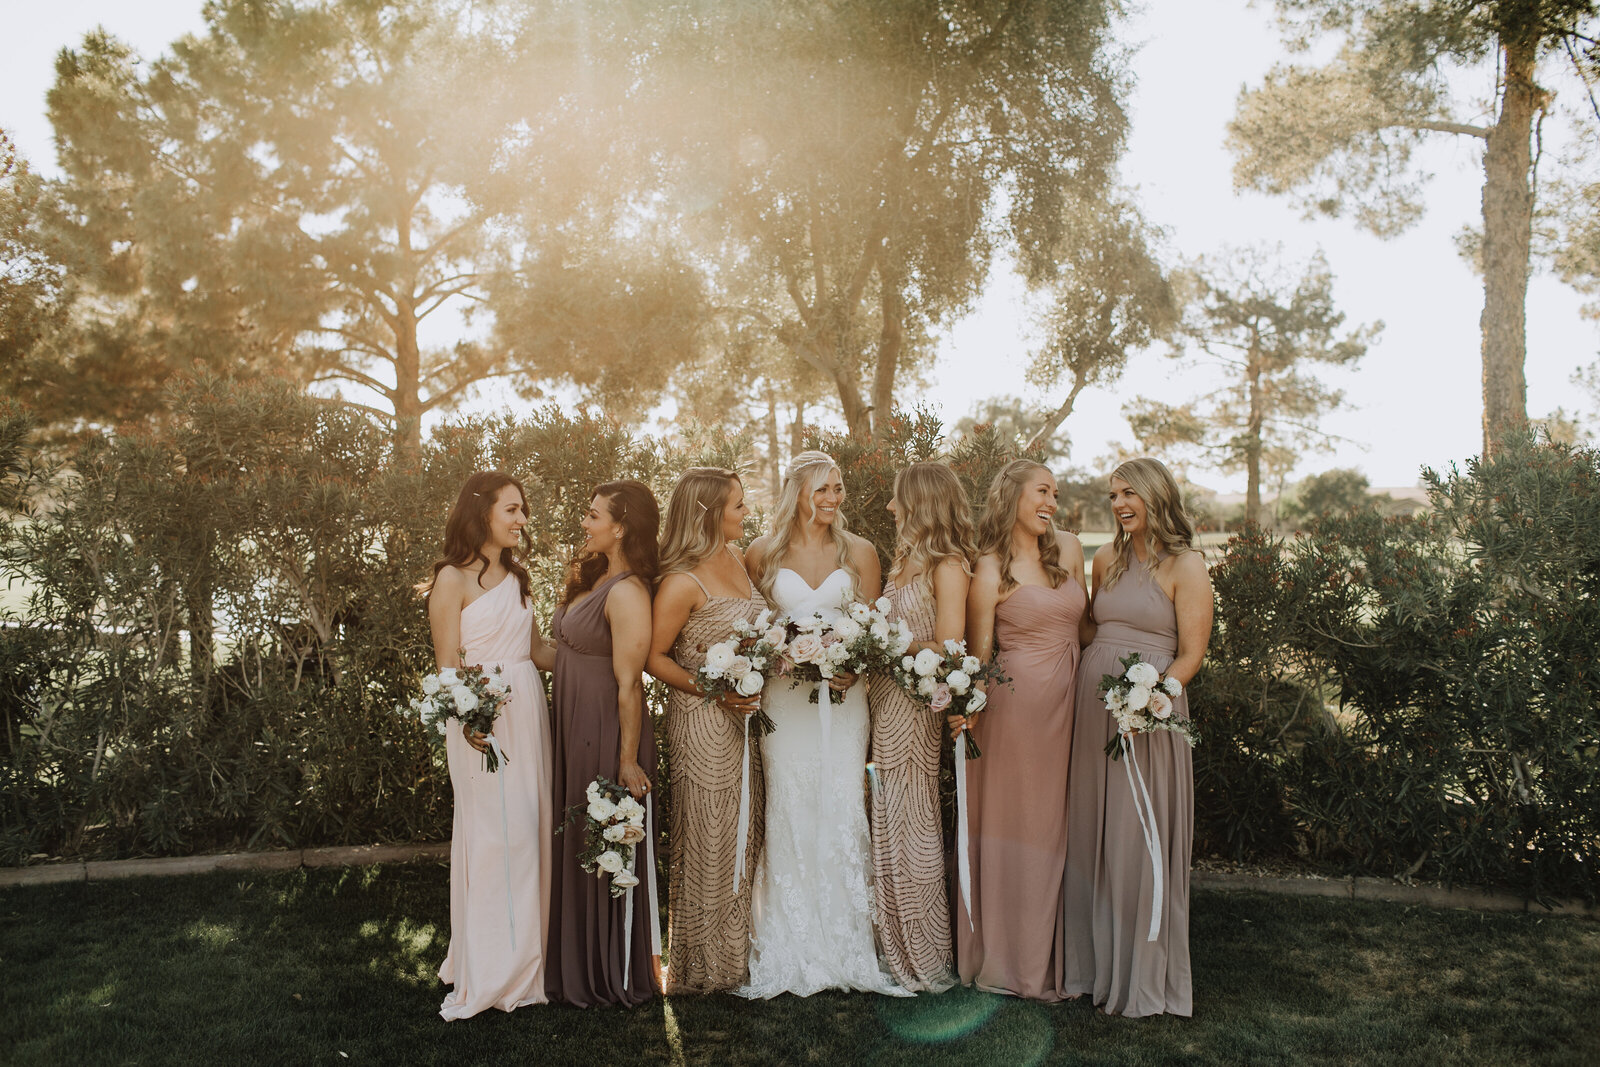 wedding-florist-pink-shades-dresses-bridesmaids